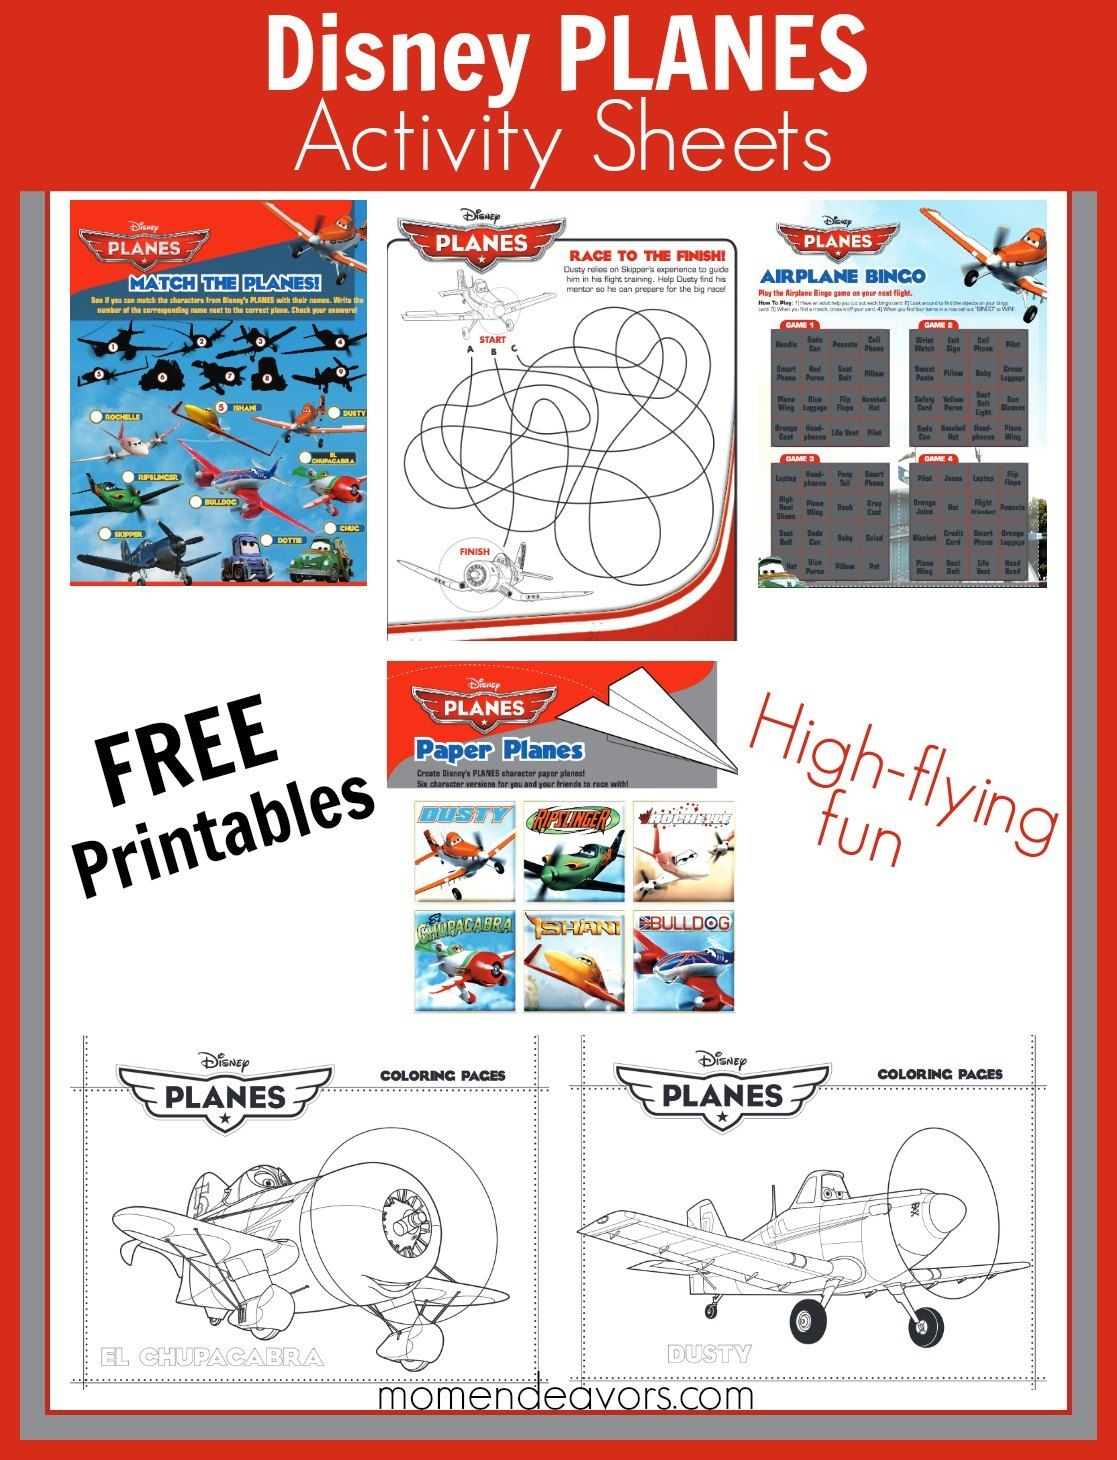 Free Printable Disney Planes Activity Sheets And Coloring Pages - Free Planes Printables